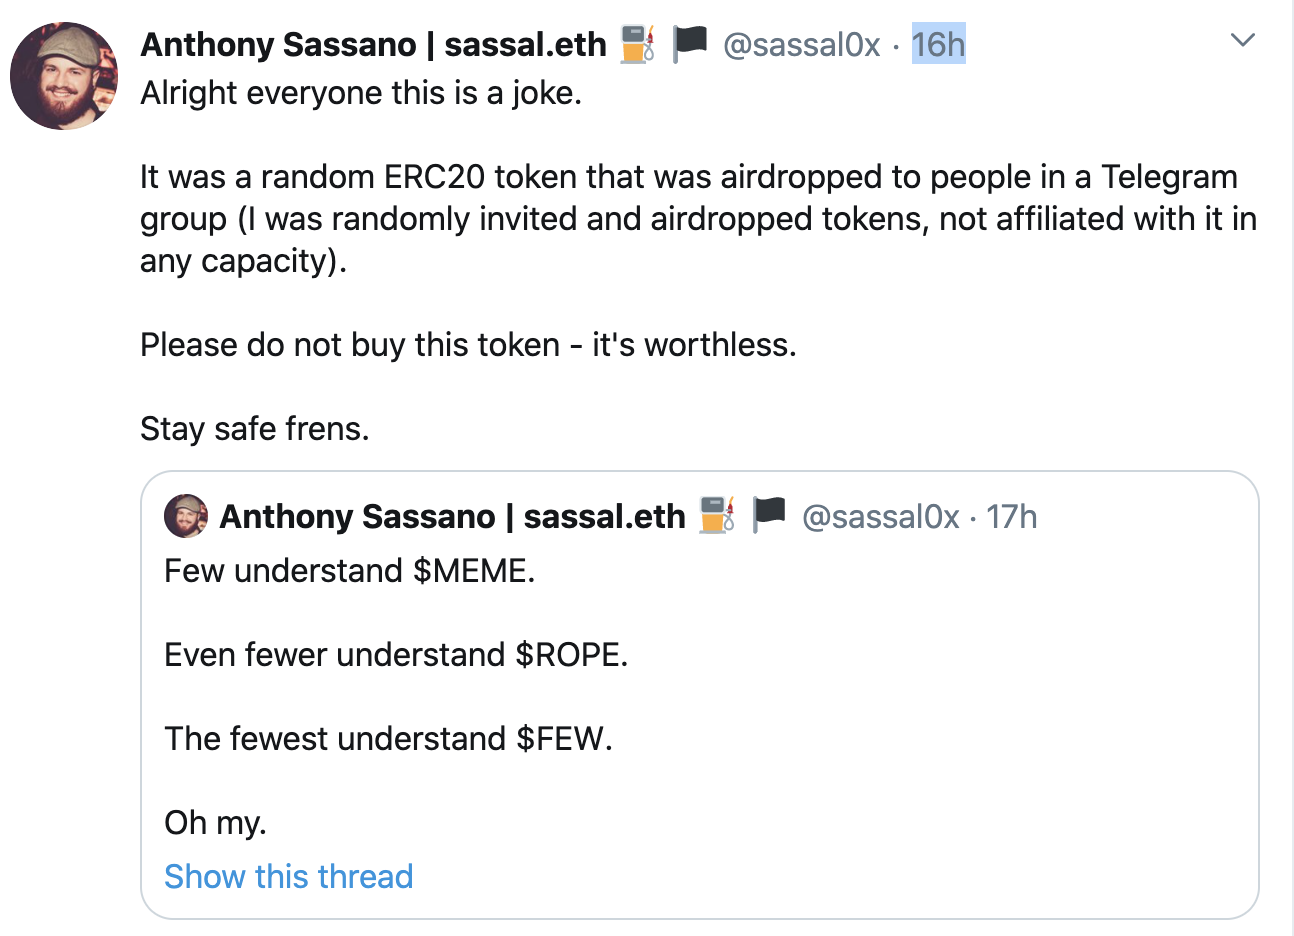 Anthony Sassano pumps worthless token, Sep 2020